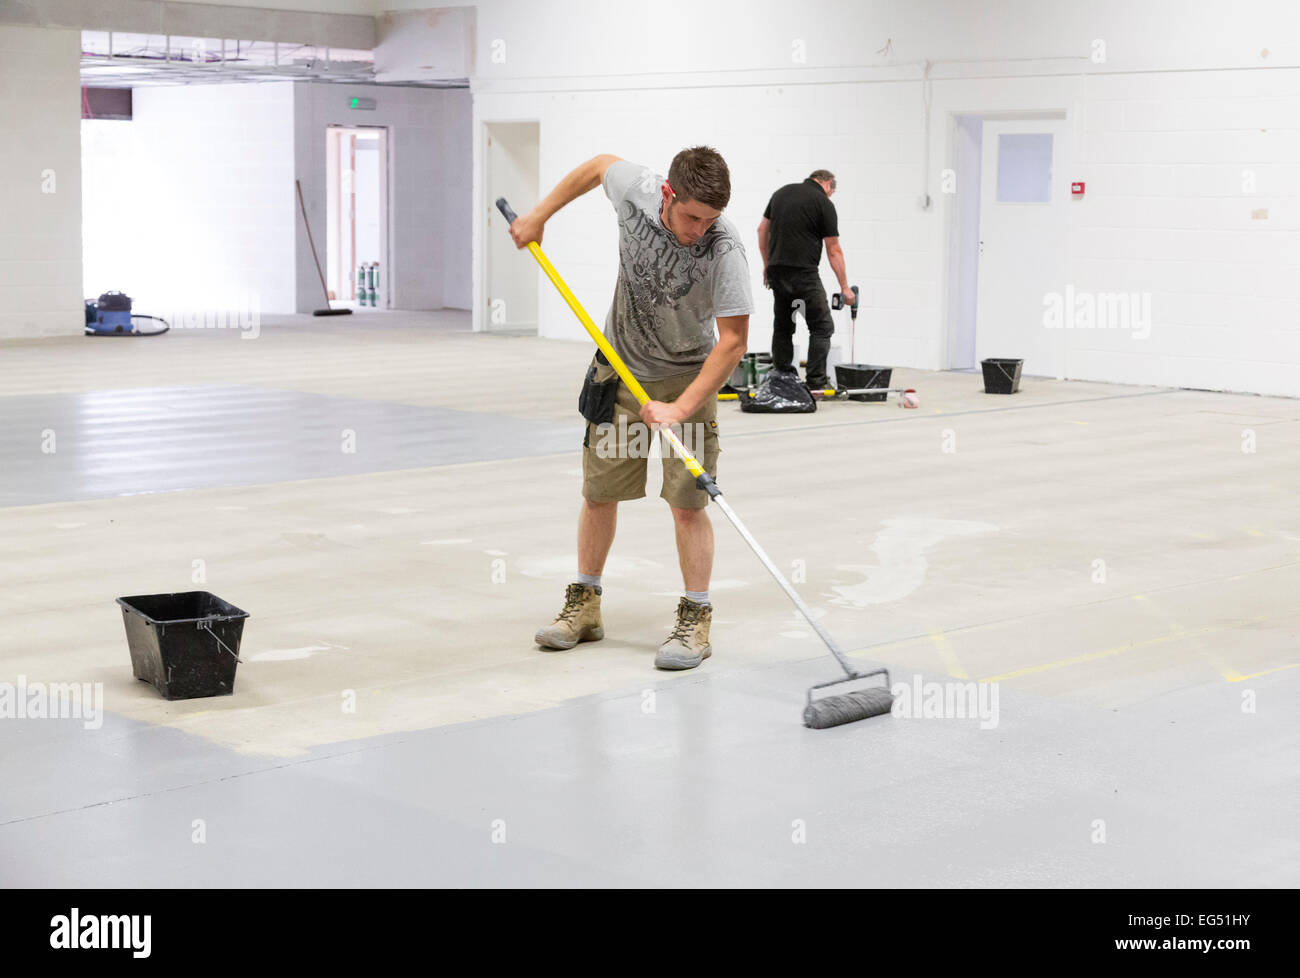 a worker painting a factory floor with epoxy based paint for hard durability - Stock Image